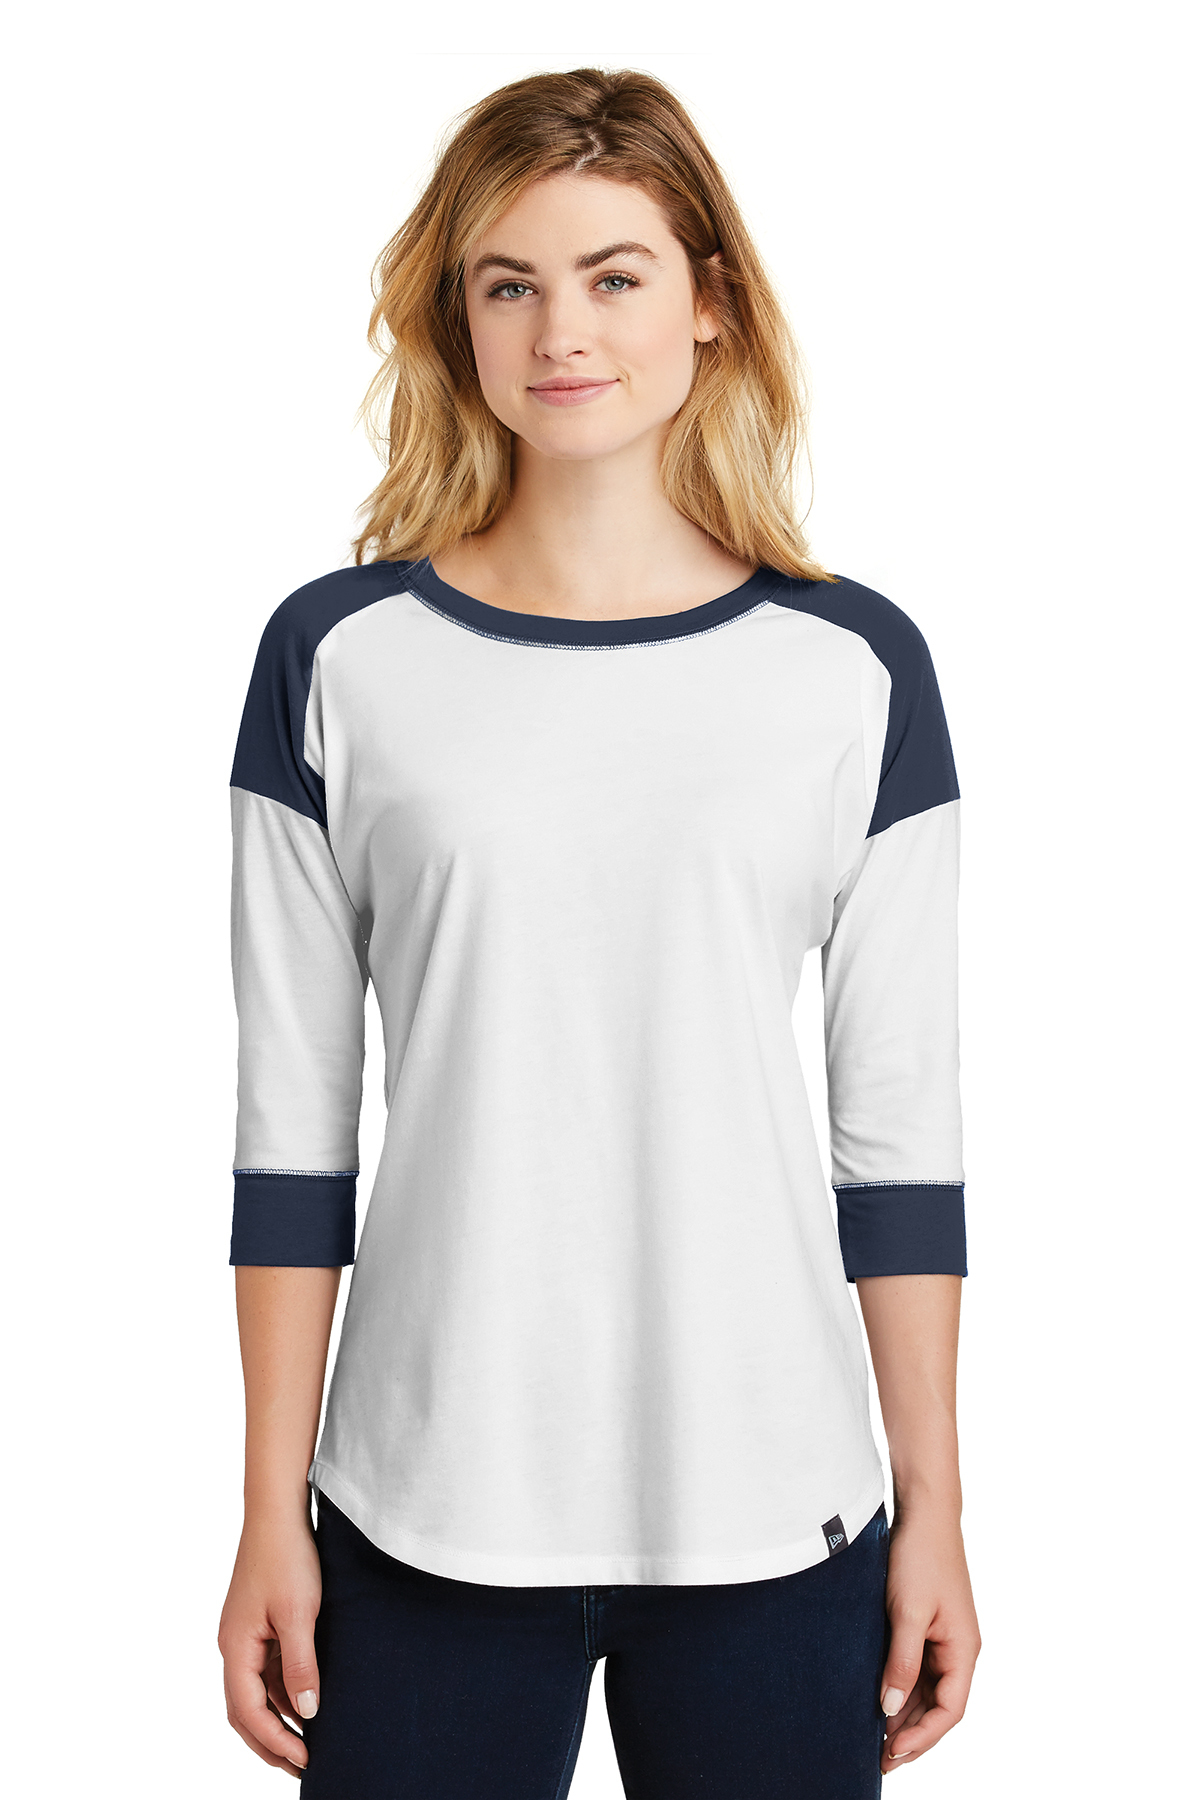 New Era LNEA104 - Ladies Heritage Blend 3/4 Sleeve Baseball ...